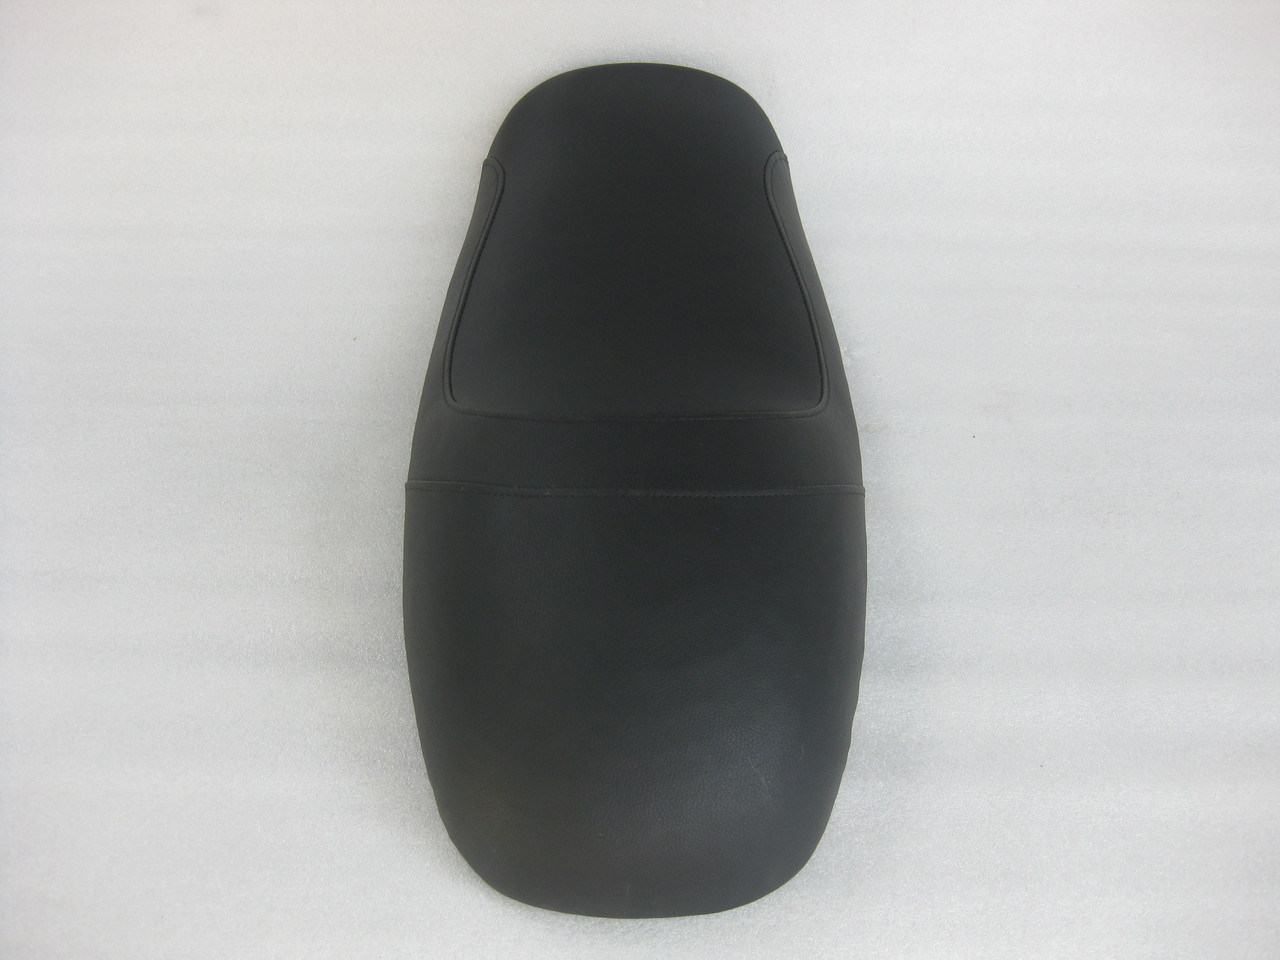 Honda CB400T HAWK CB400A CM400 Cafe Racer Motorcycle Seat with modified seat pan #4262